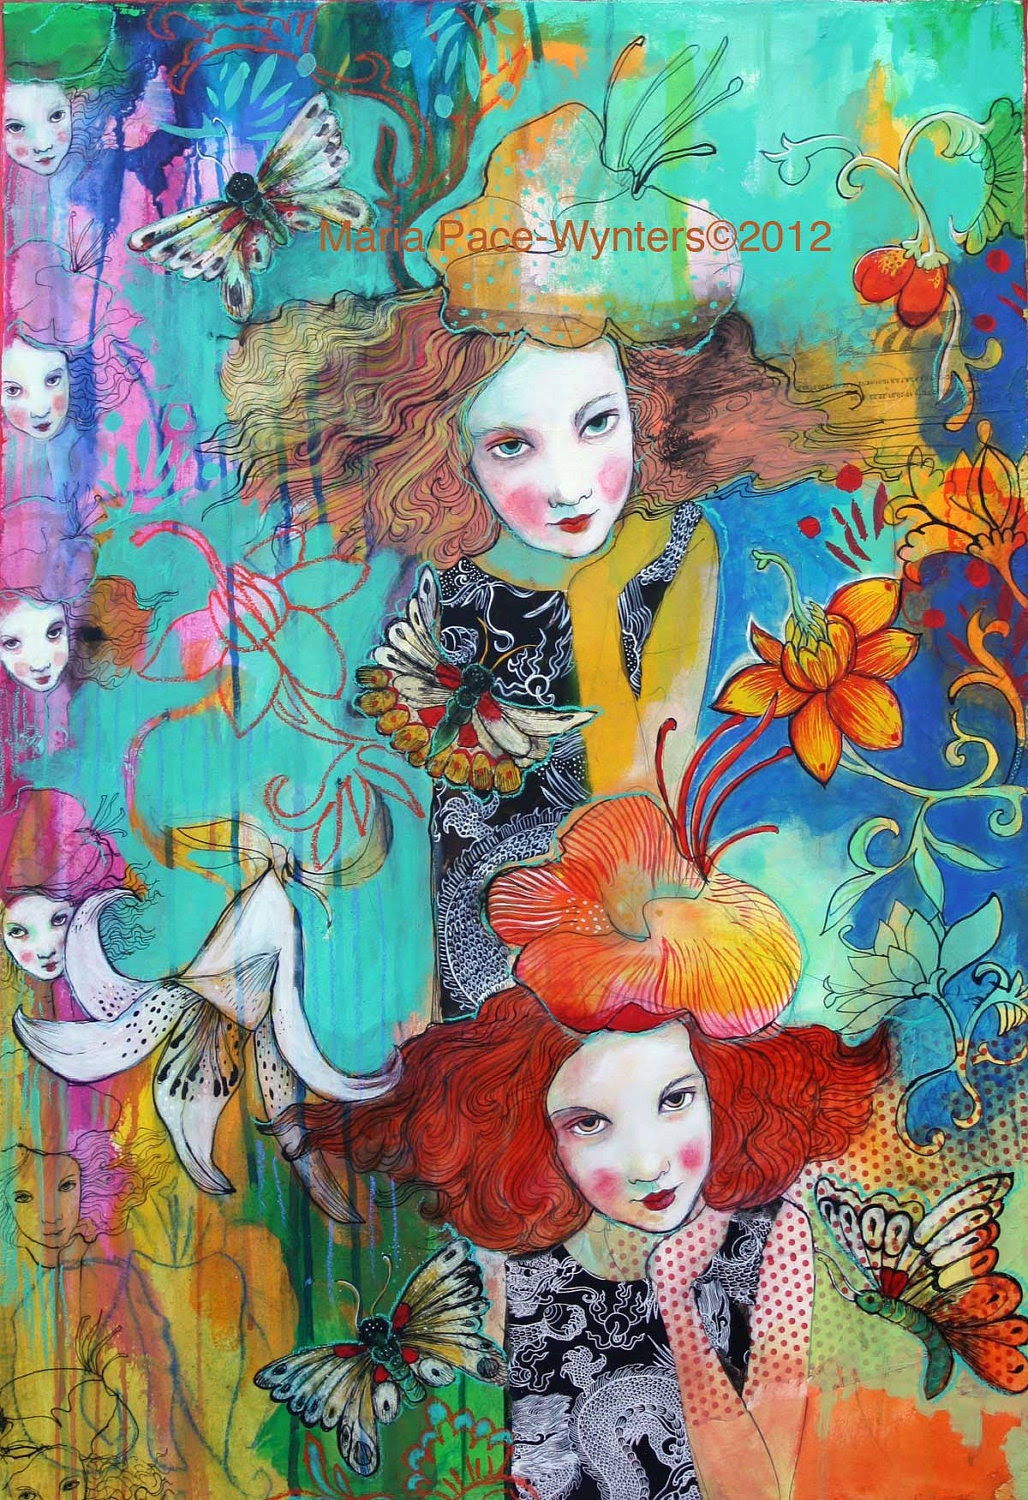 Recurring Dream- Original mixed media painting by Maria Pace-Wynters